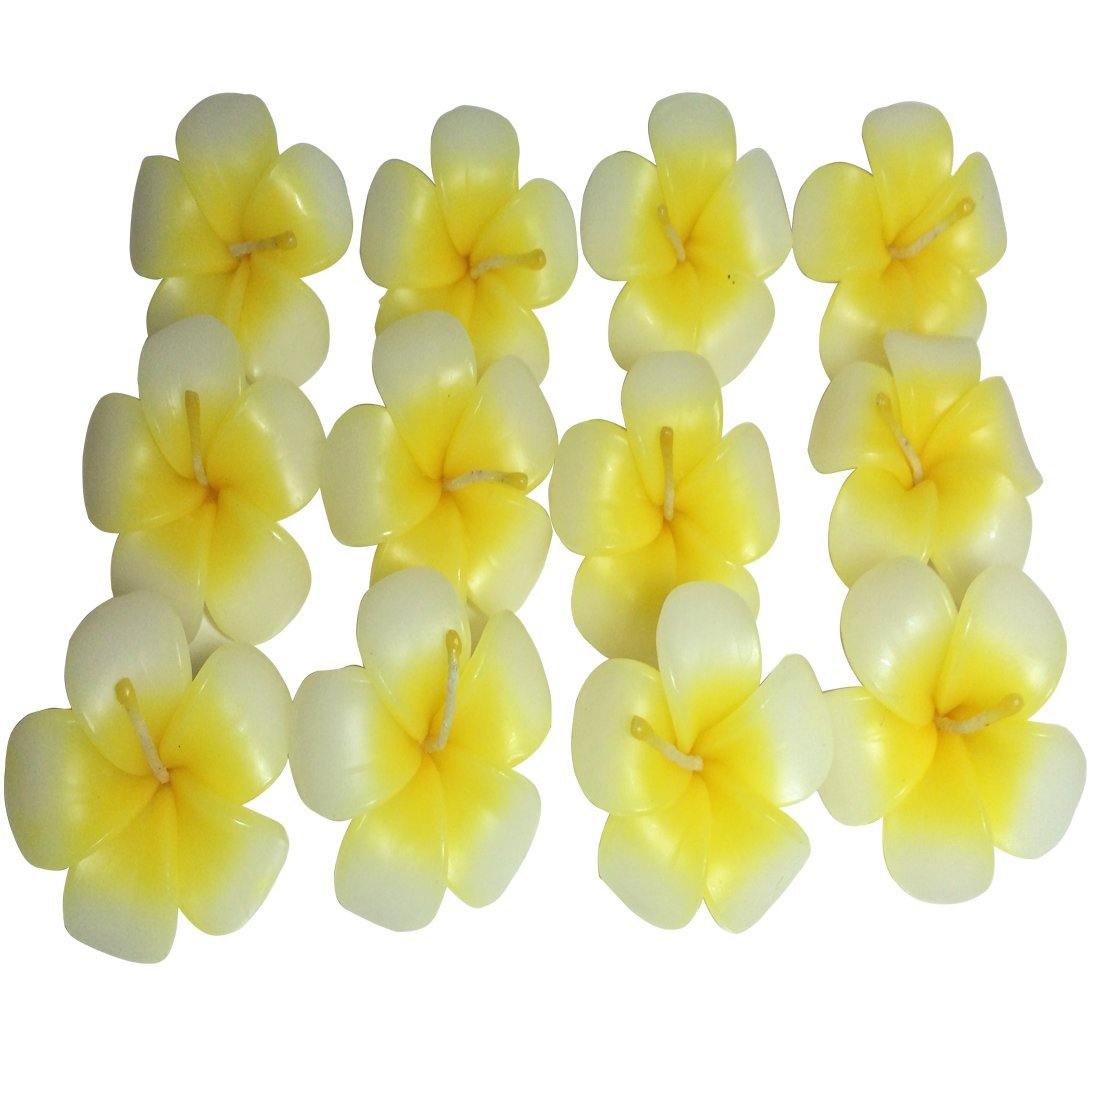 Scented Frangipany Asian Flower Floating Candles for Spa Pool(pack of 12),yellow